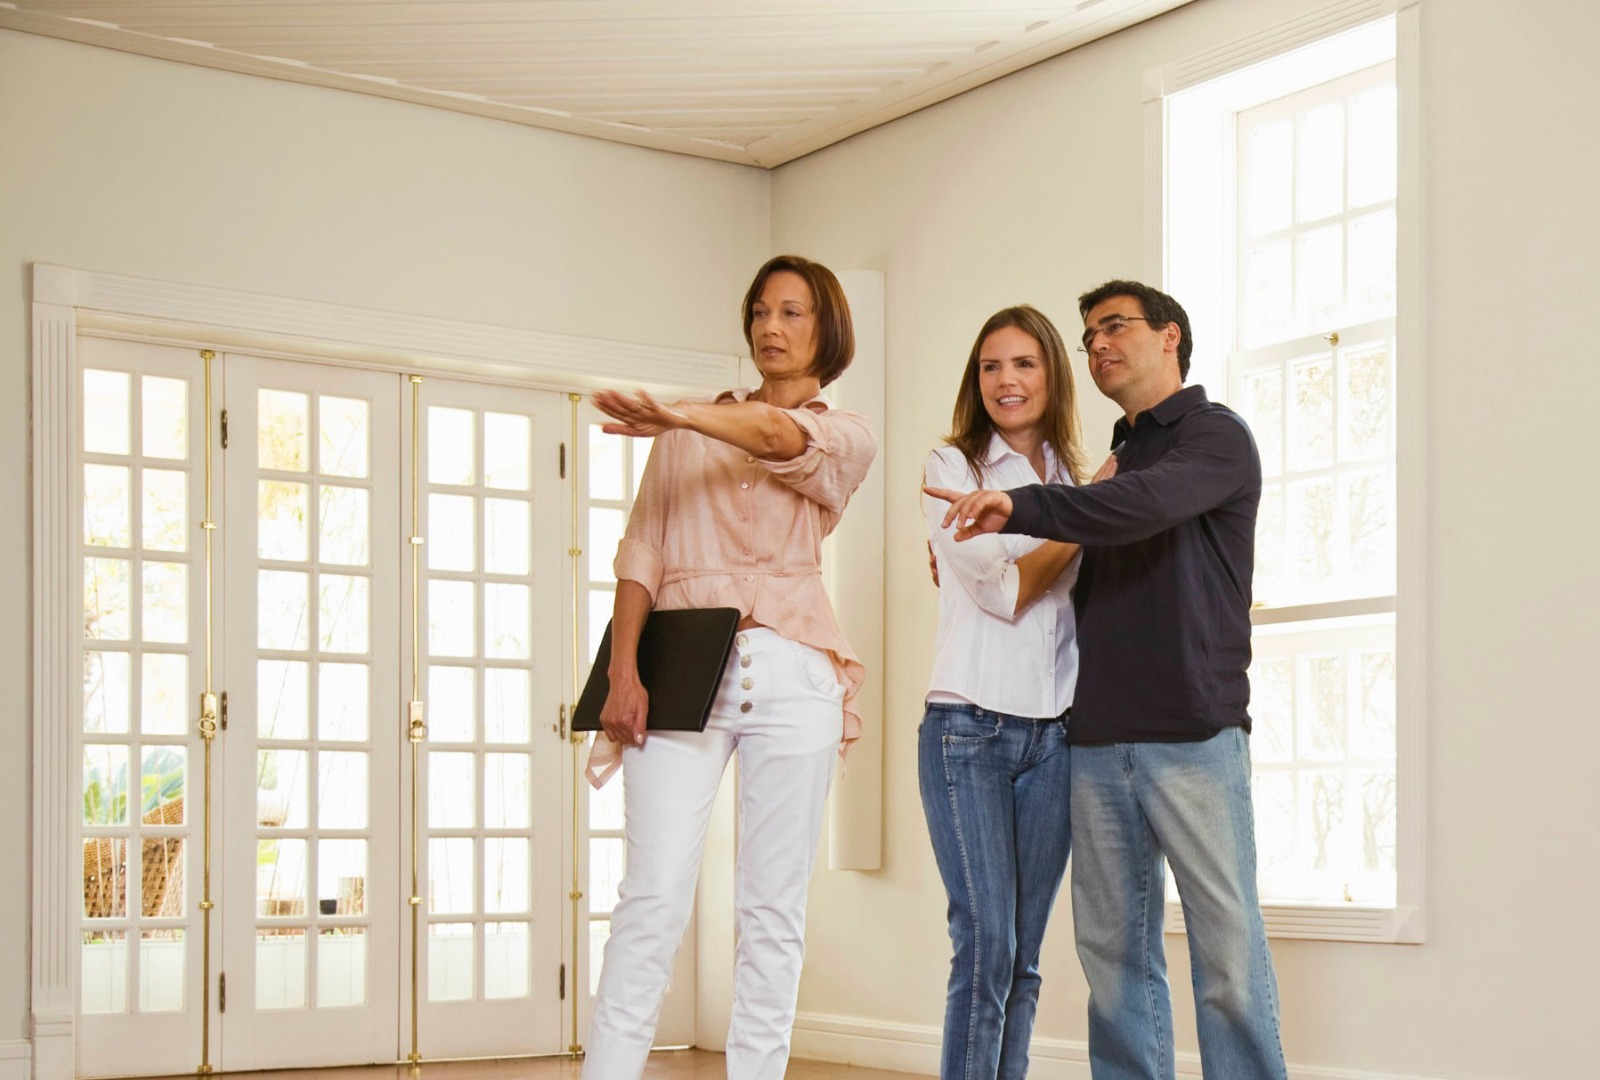 Home Buying Tips - Questions You Should Ask About Each Room of a Home During Visits or Open Houses